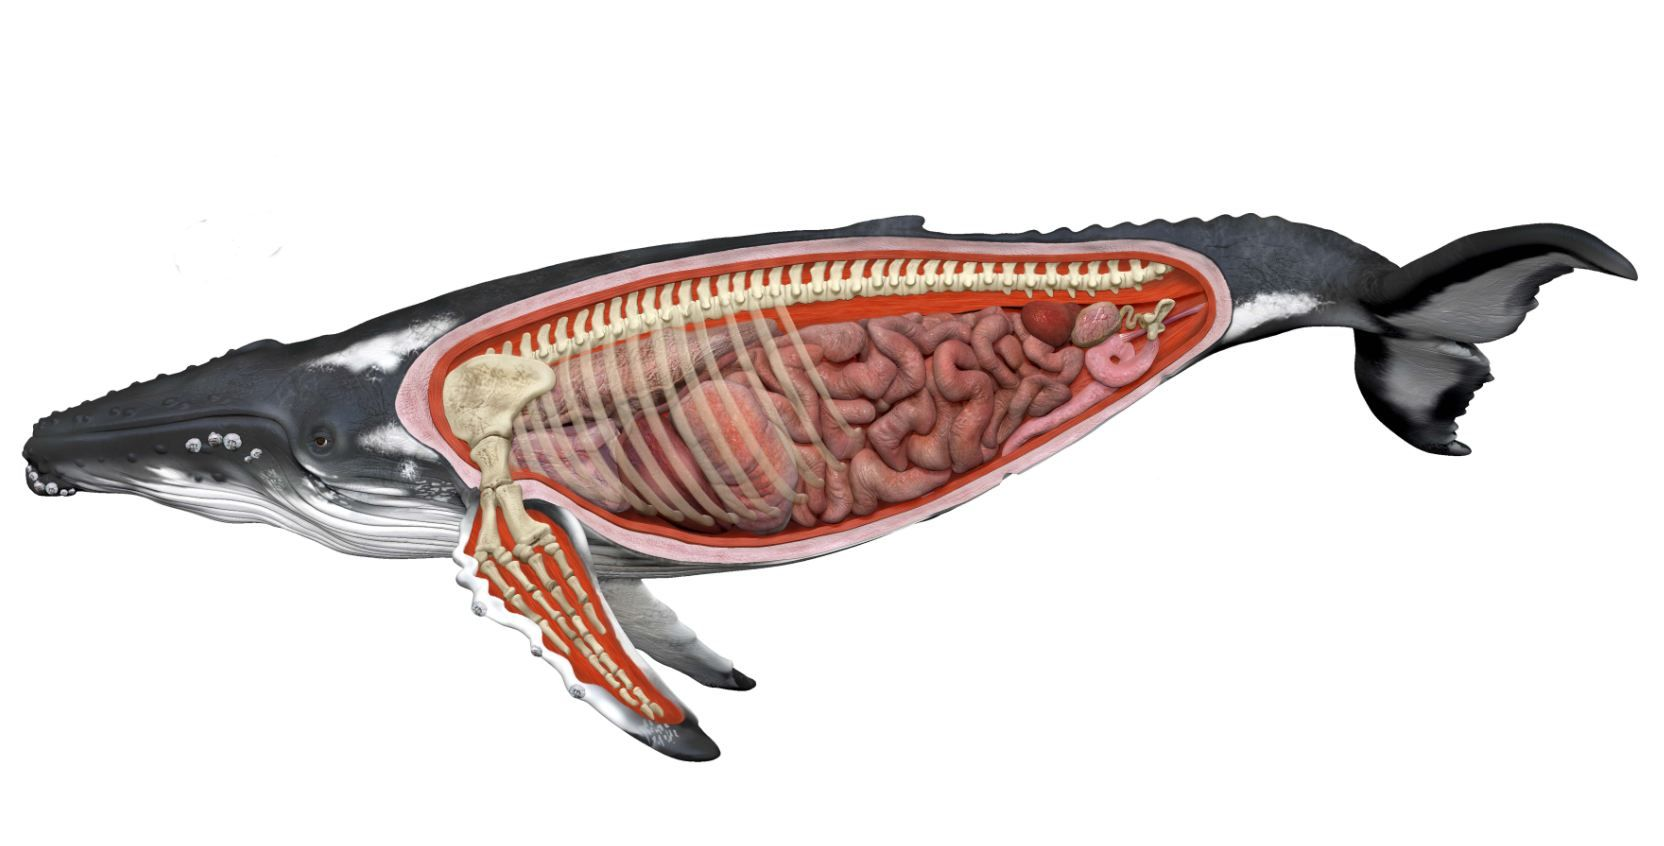 humpback whale anatomy diagram - Google Search | The Sea | Pinterest ...